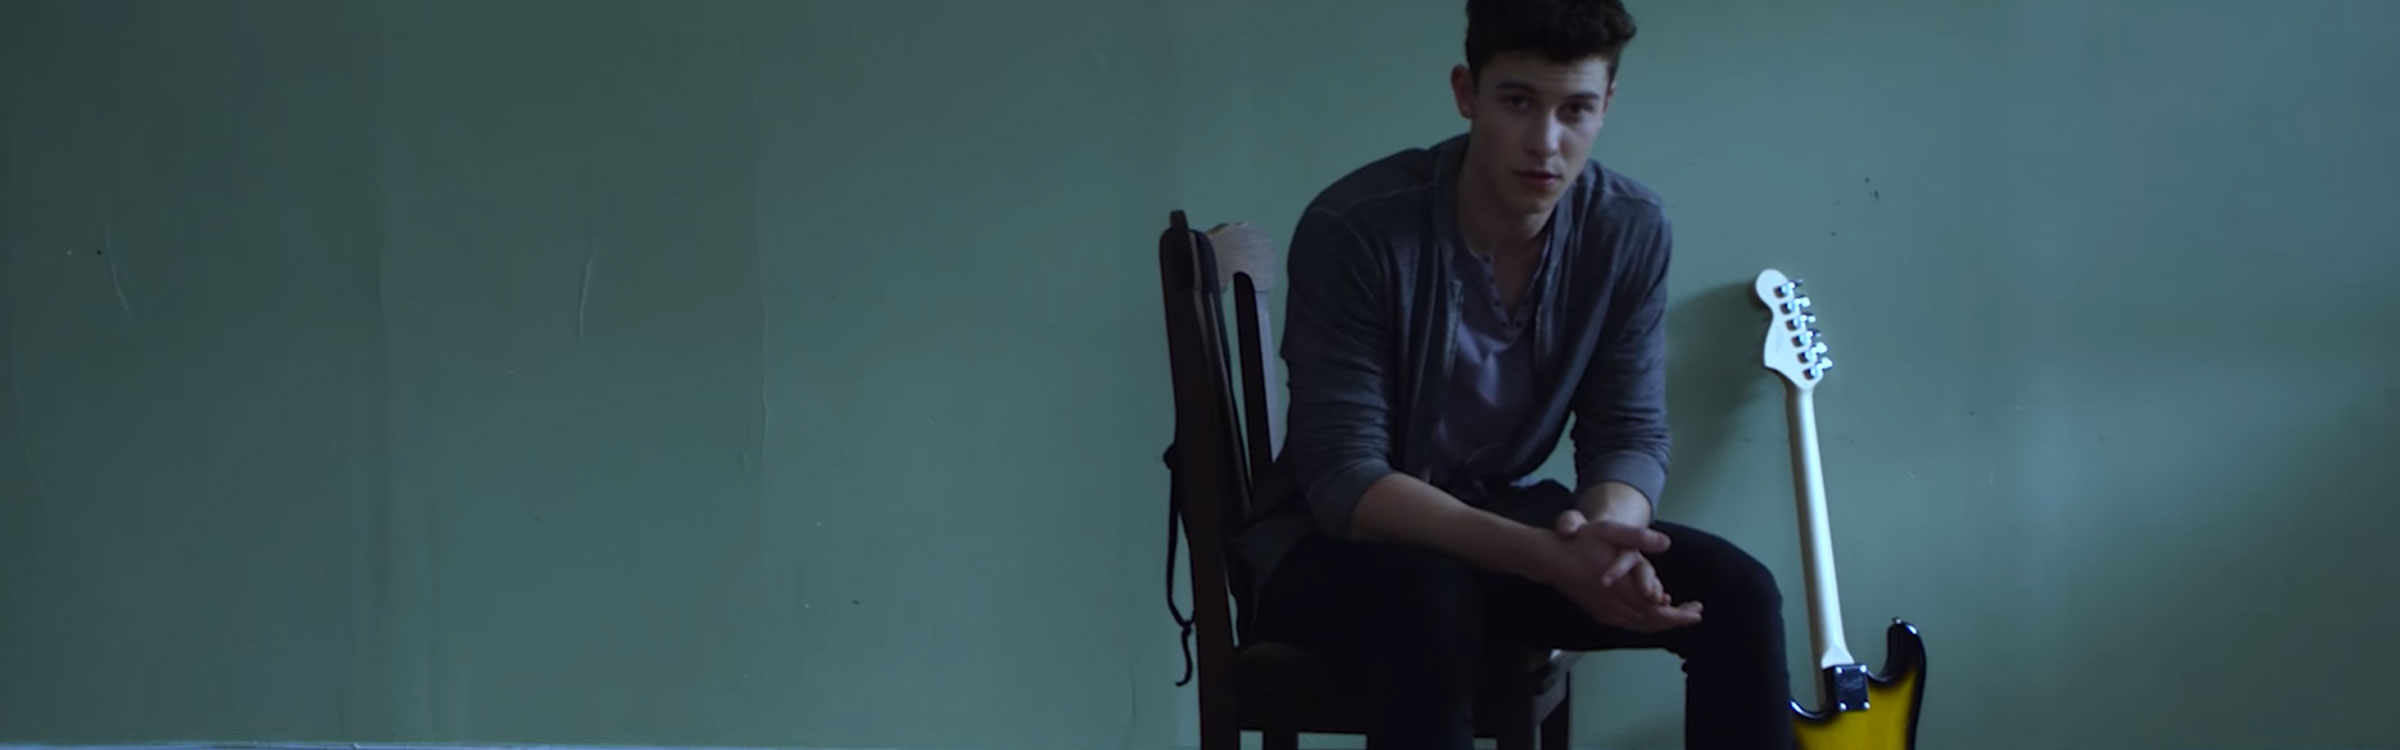 Shawn mendes better header